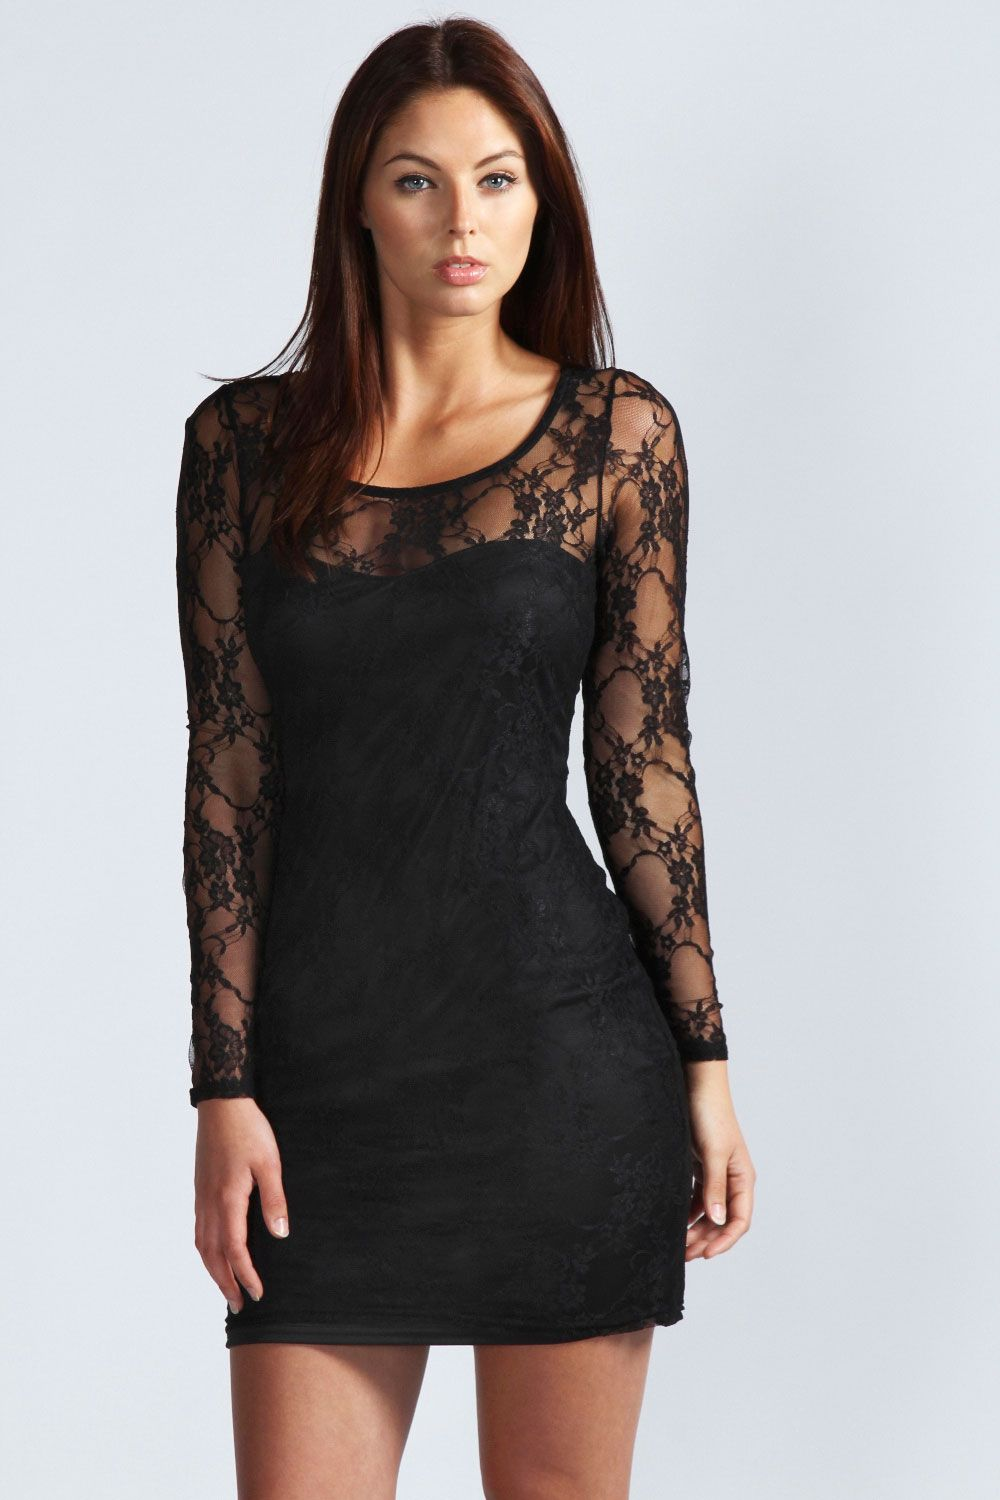 1915a2c93e0 Samantha Long Sleeve Lace Bodycon Dress at boohoo.com - £20.00 ...